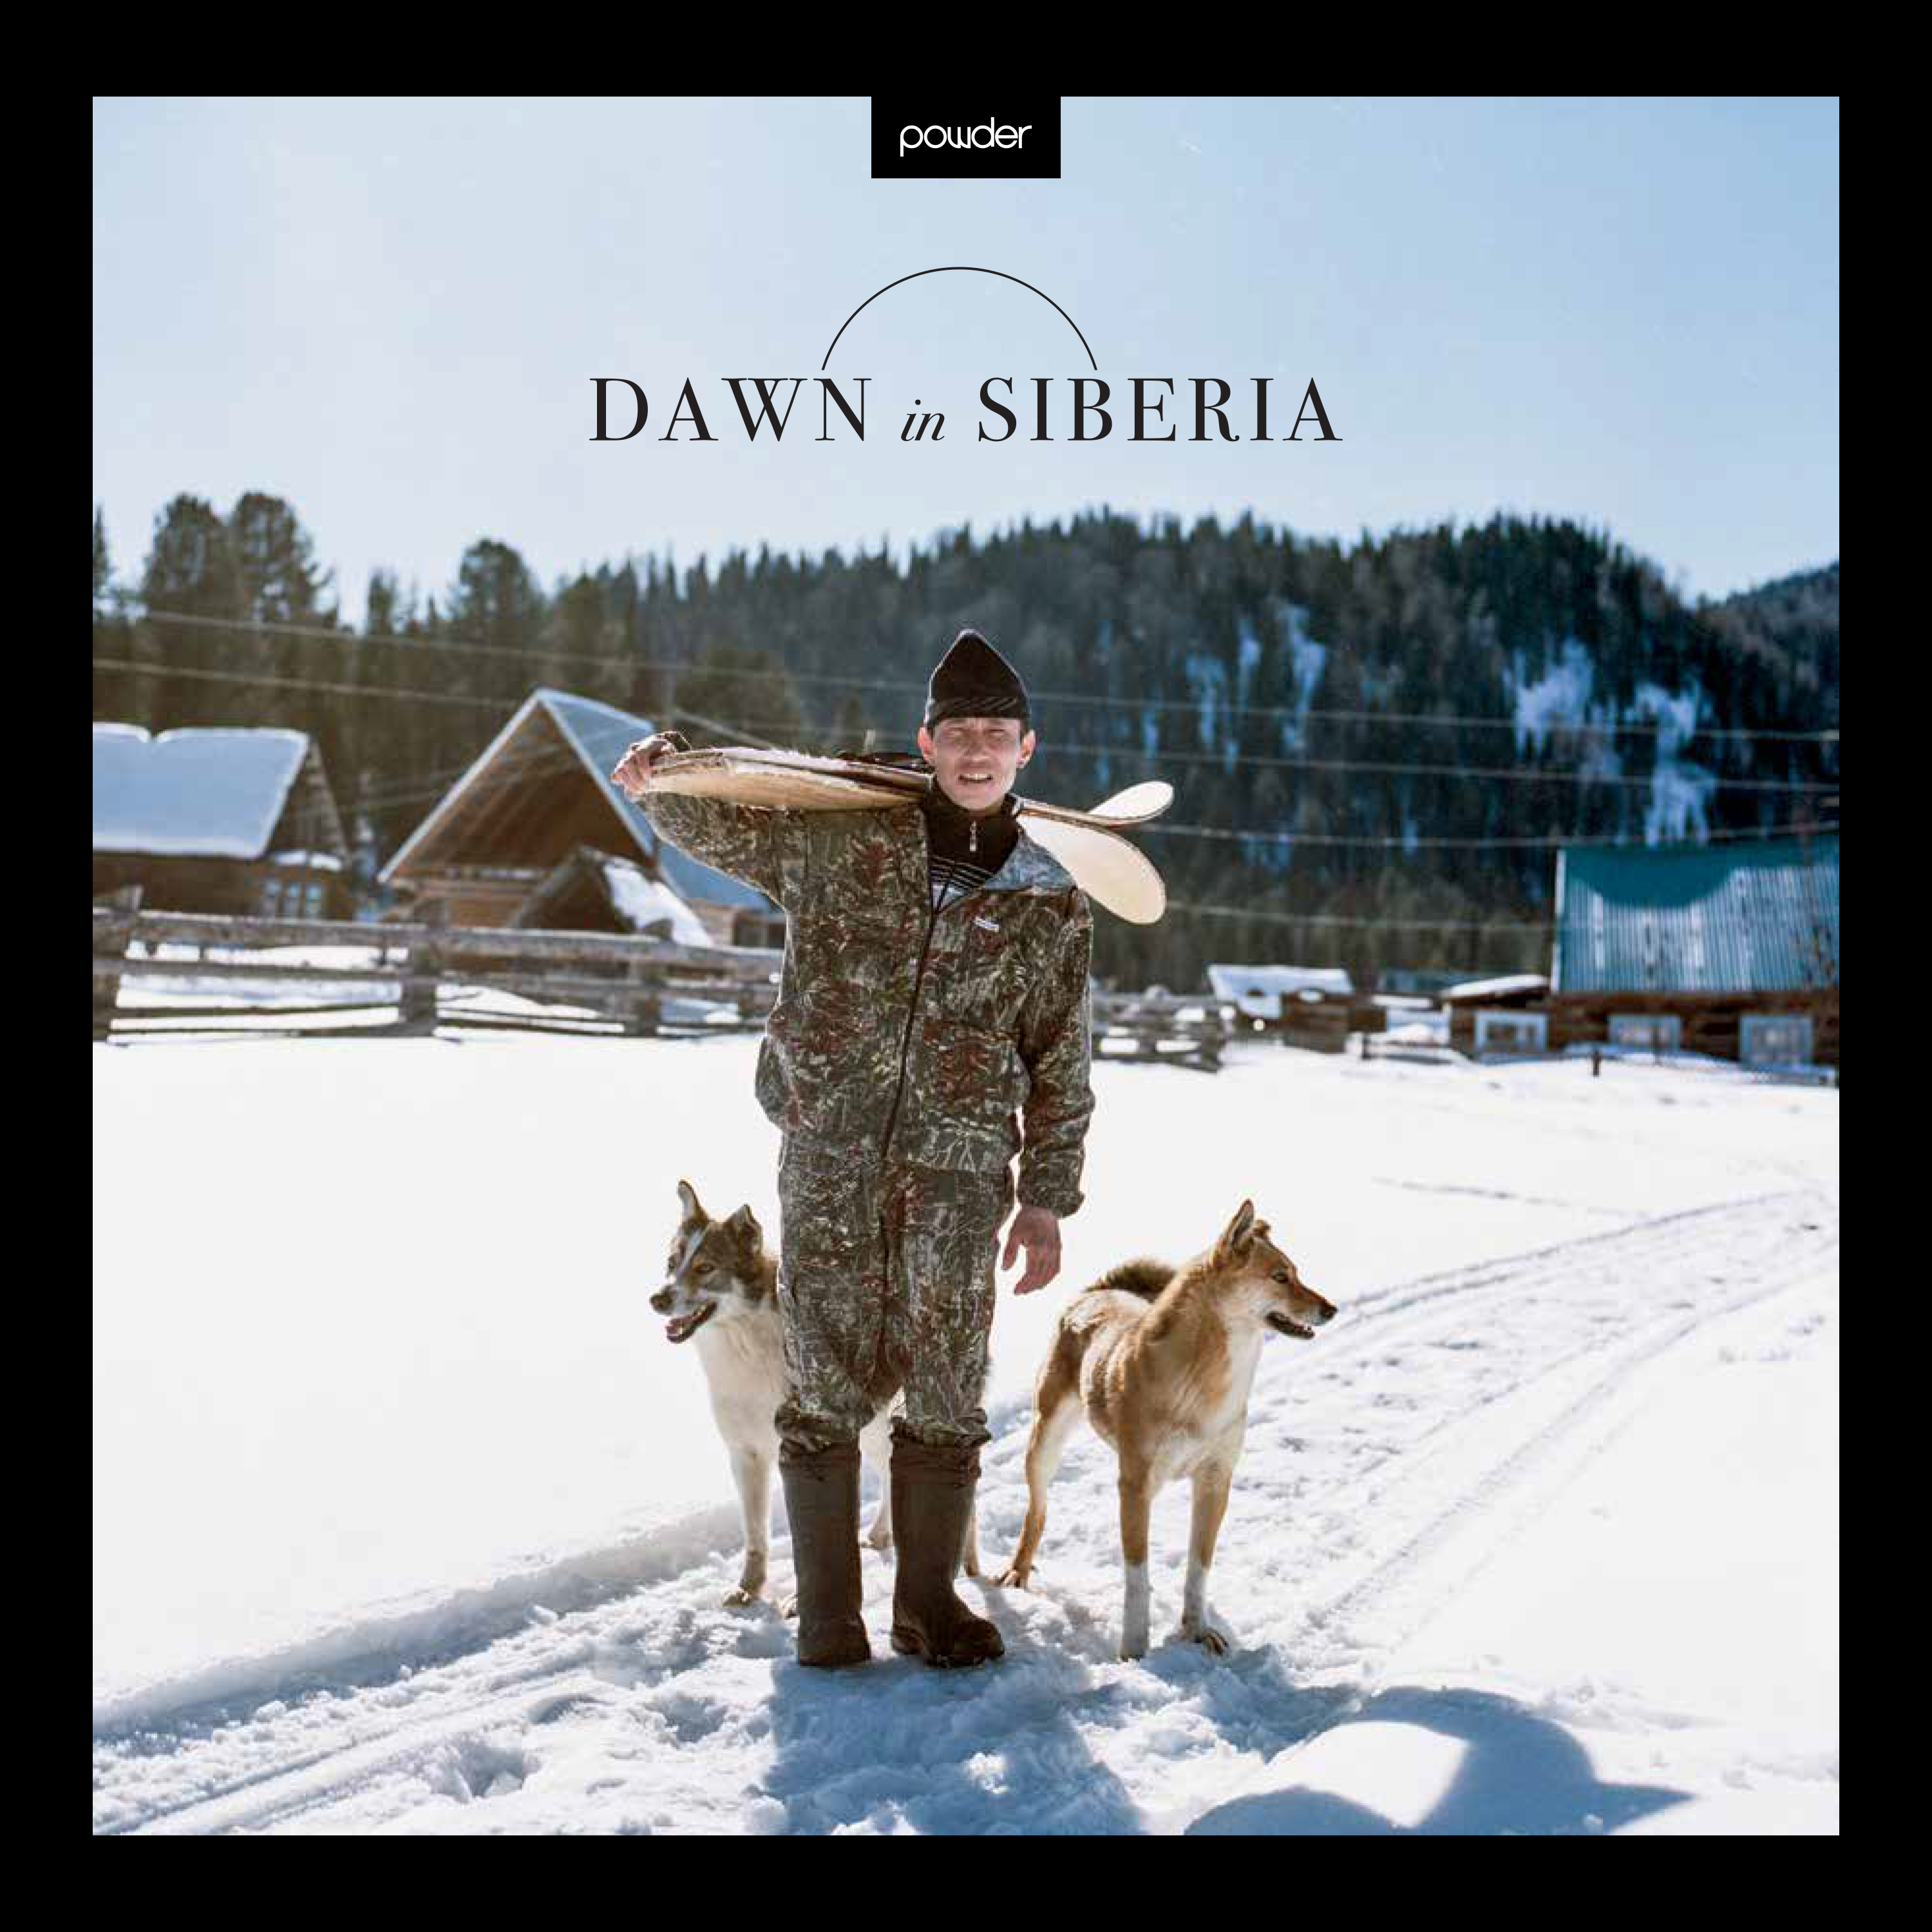 Introducing Dawn In Siberia, POWDER's first book.